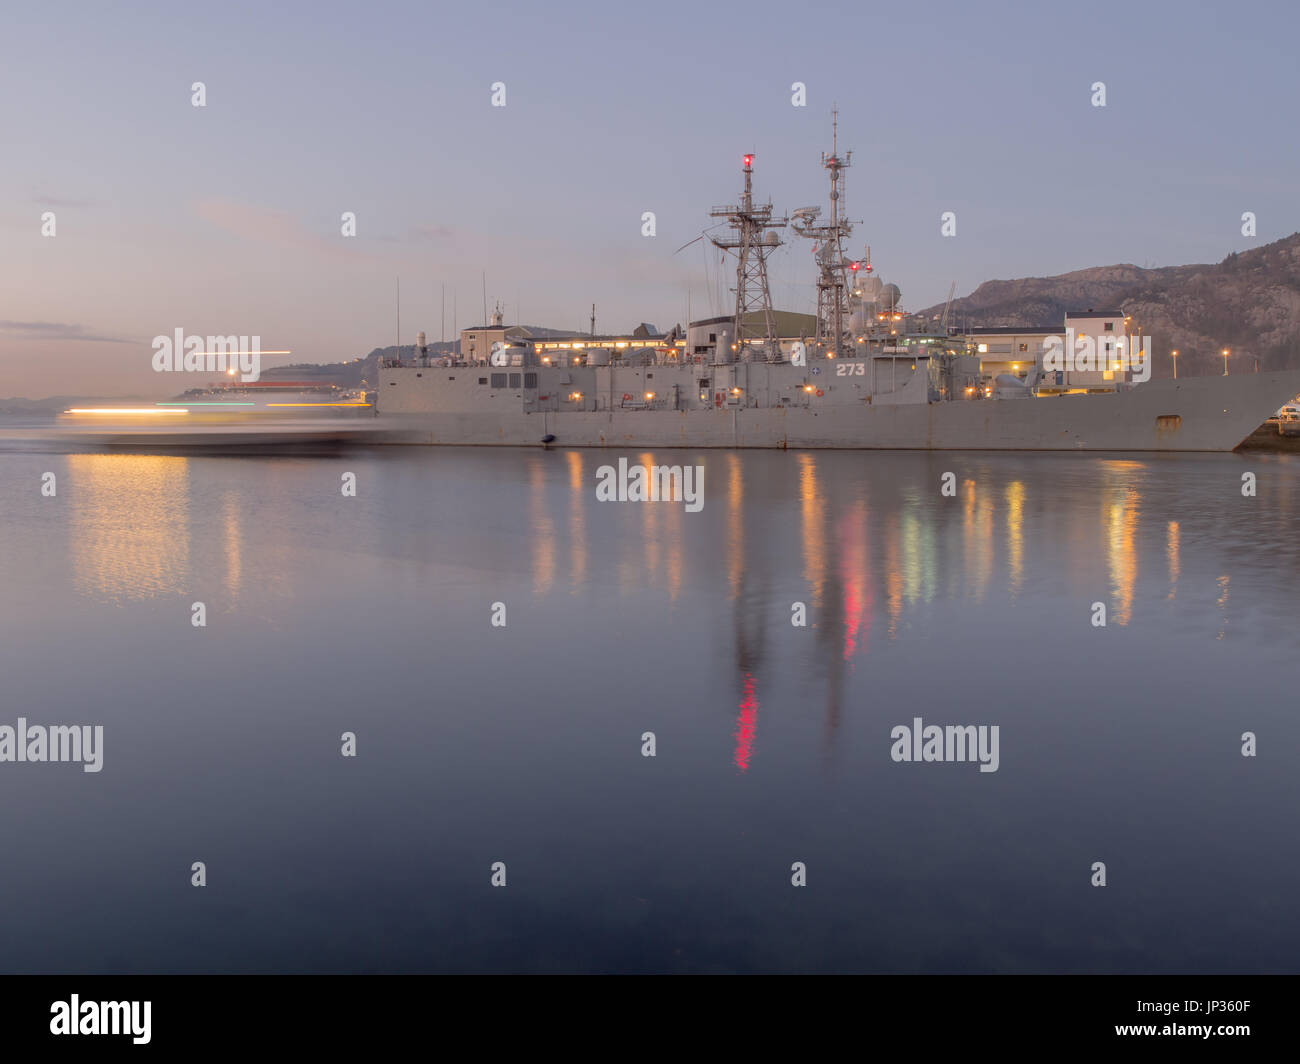 Bergen, Norway - February 12, 2017:  Navy ships in the port of Bergen at night - Stock Image